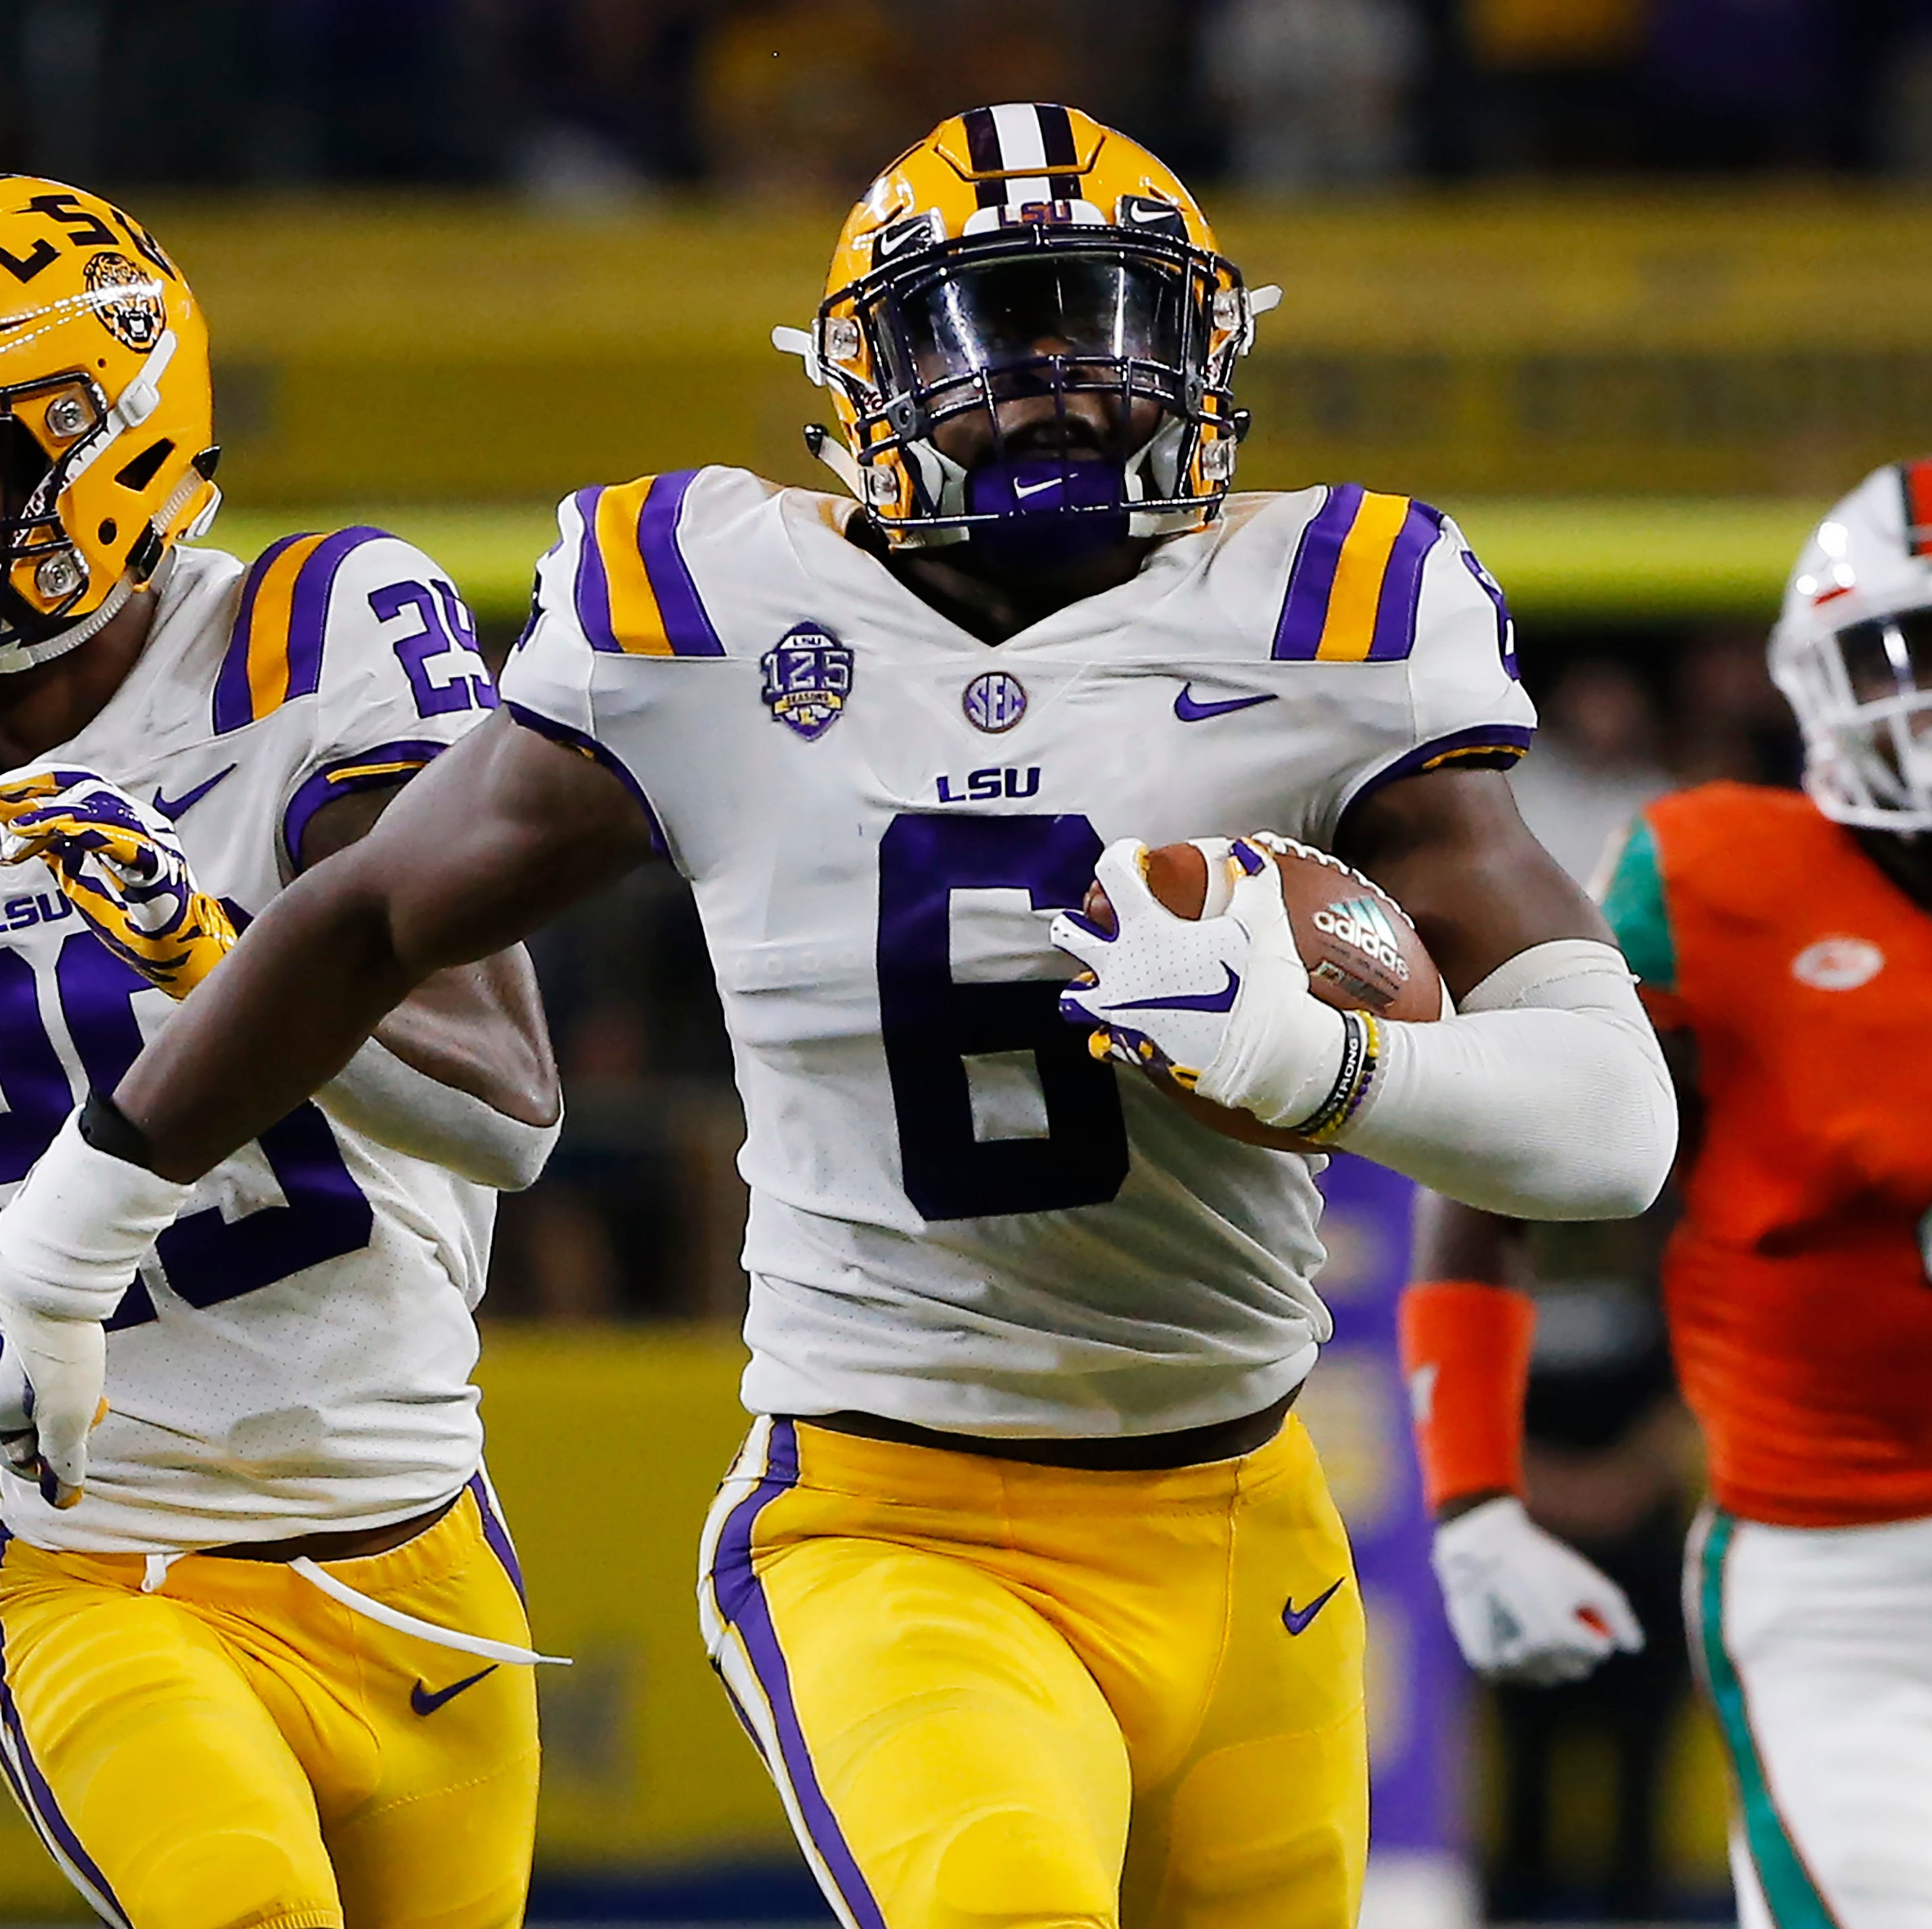 Sunday's college football: No. 25 LSU drills No. 8 Miami